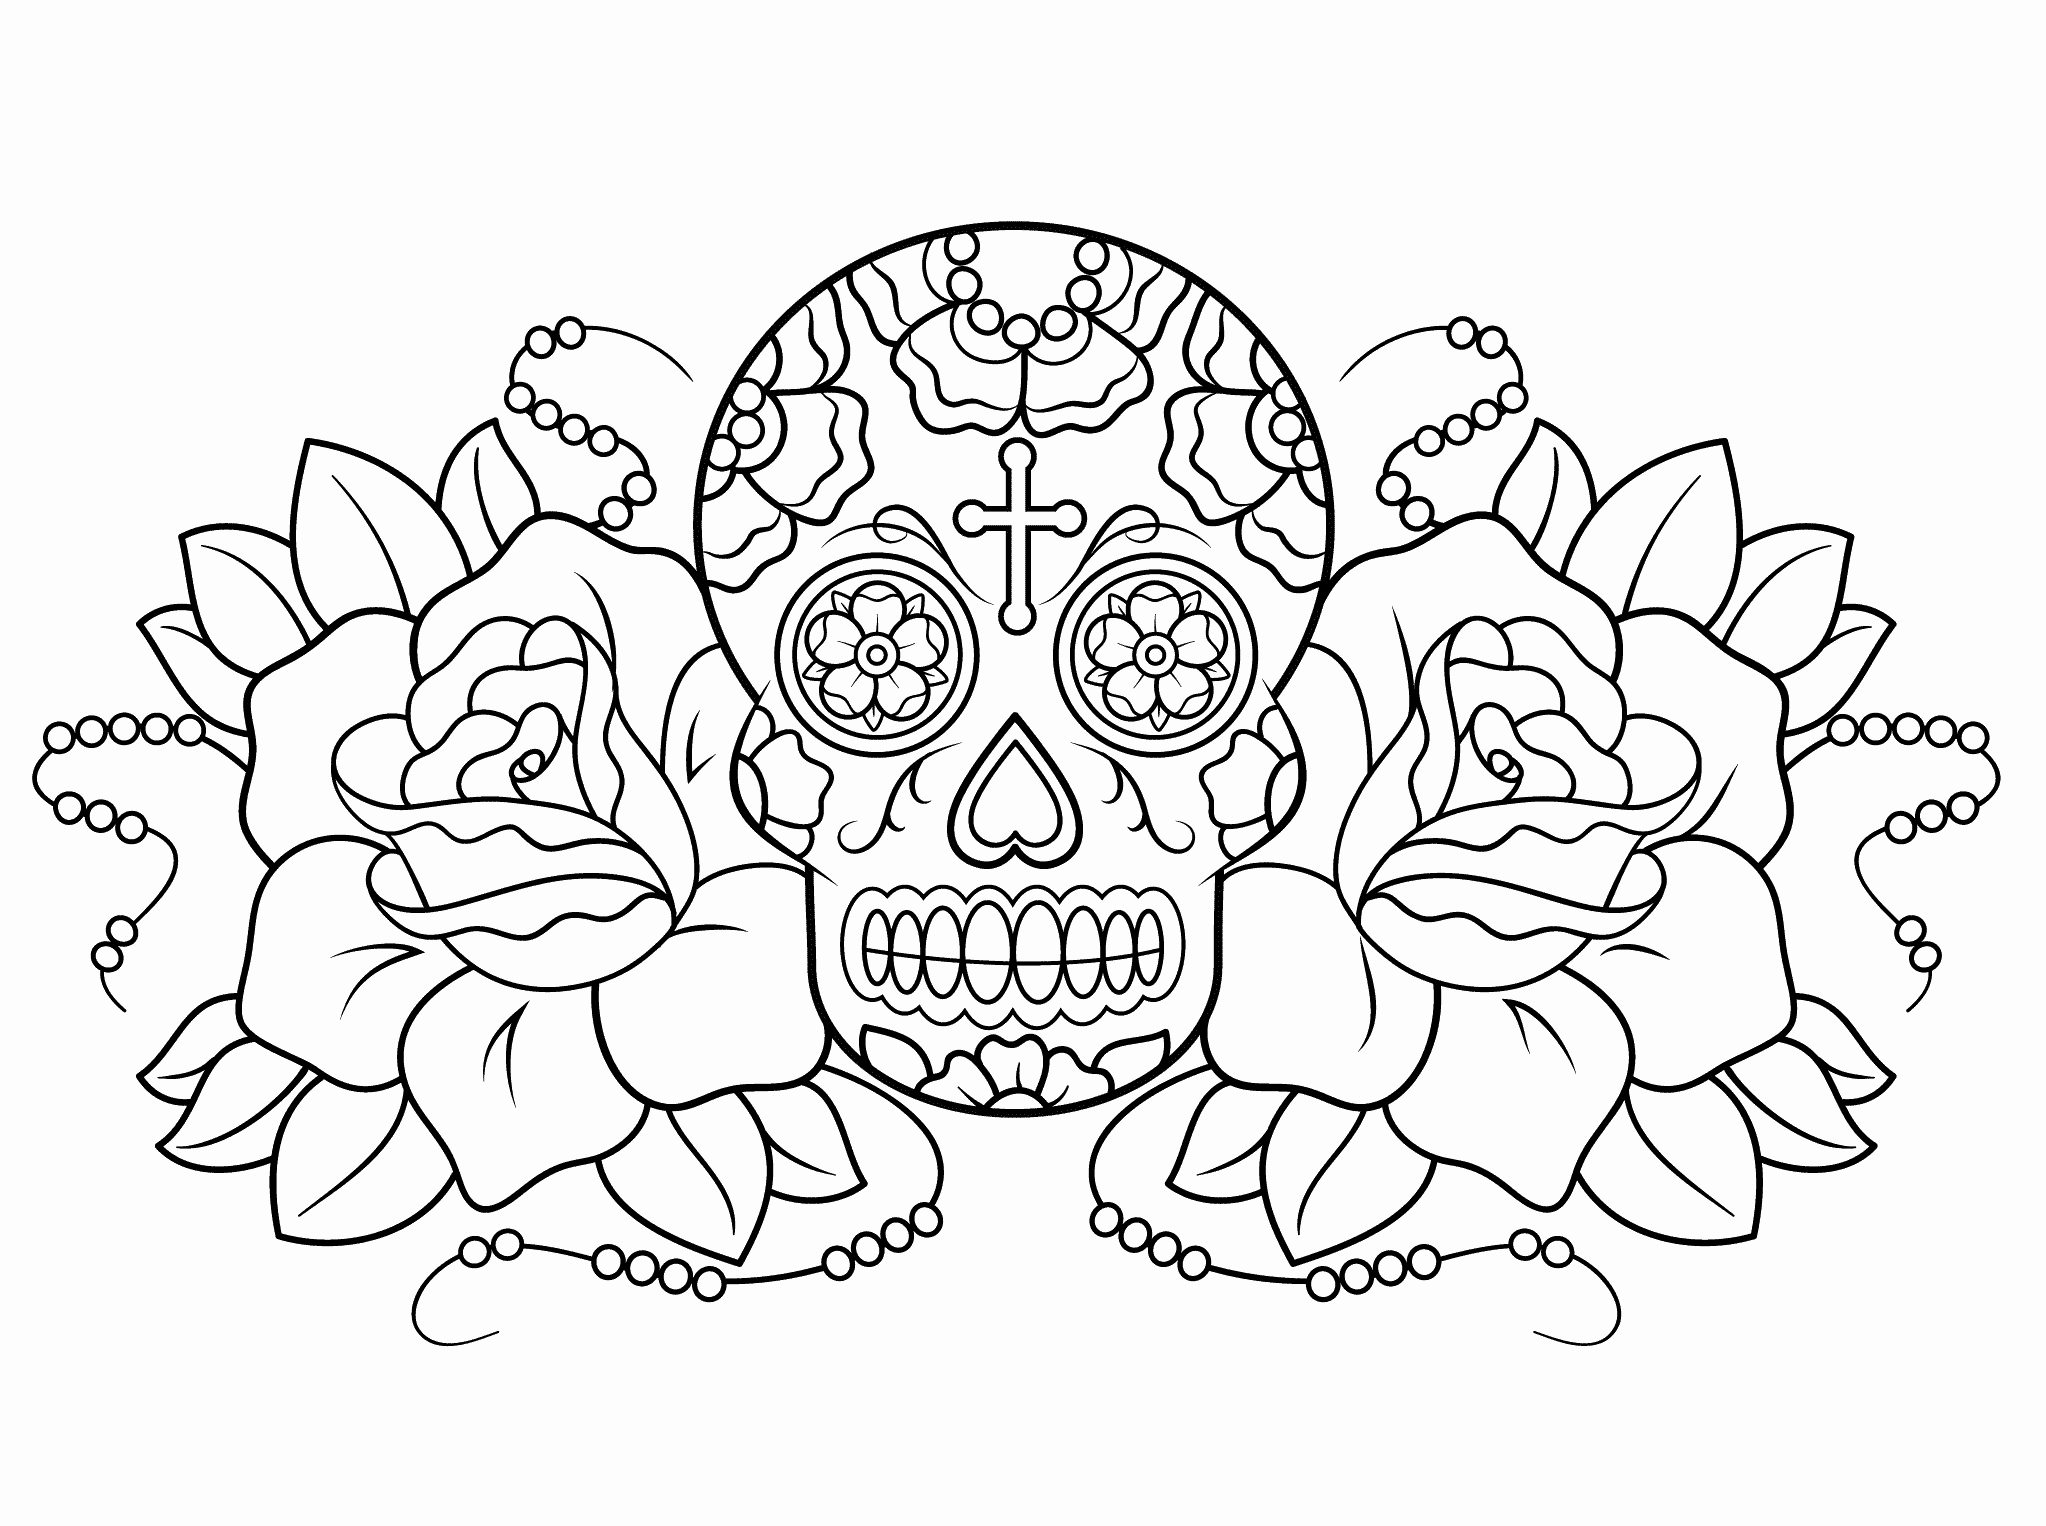 2046x1526 Day Of The Dead Printable Coloring Pages Luxury Free Printable Day